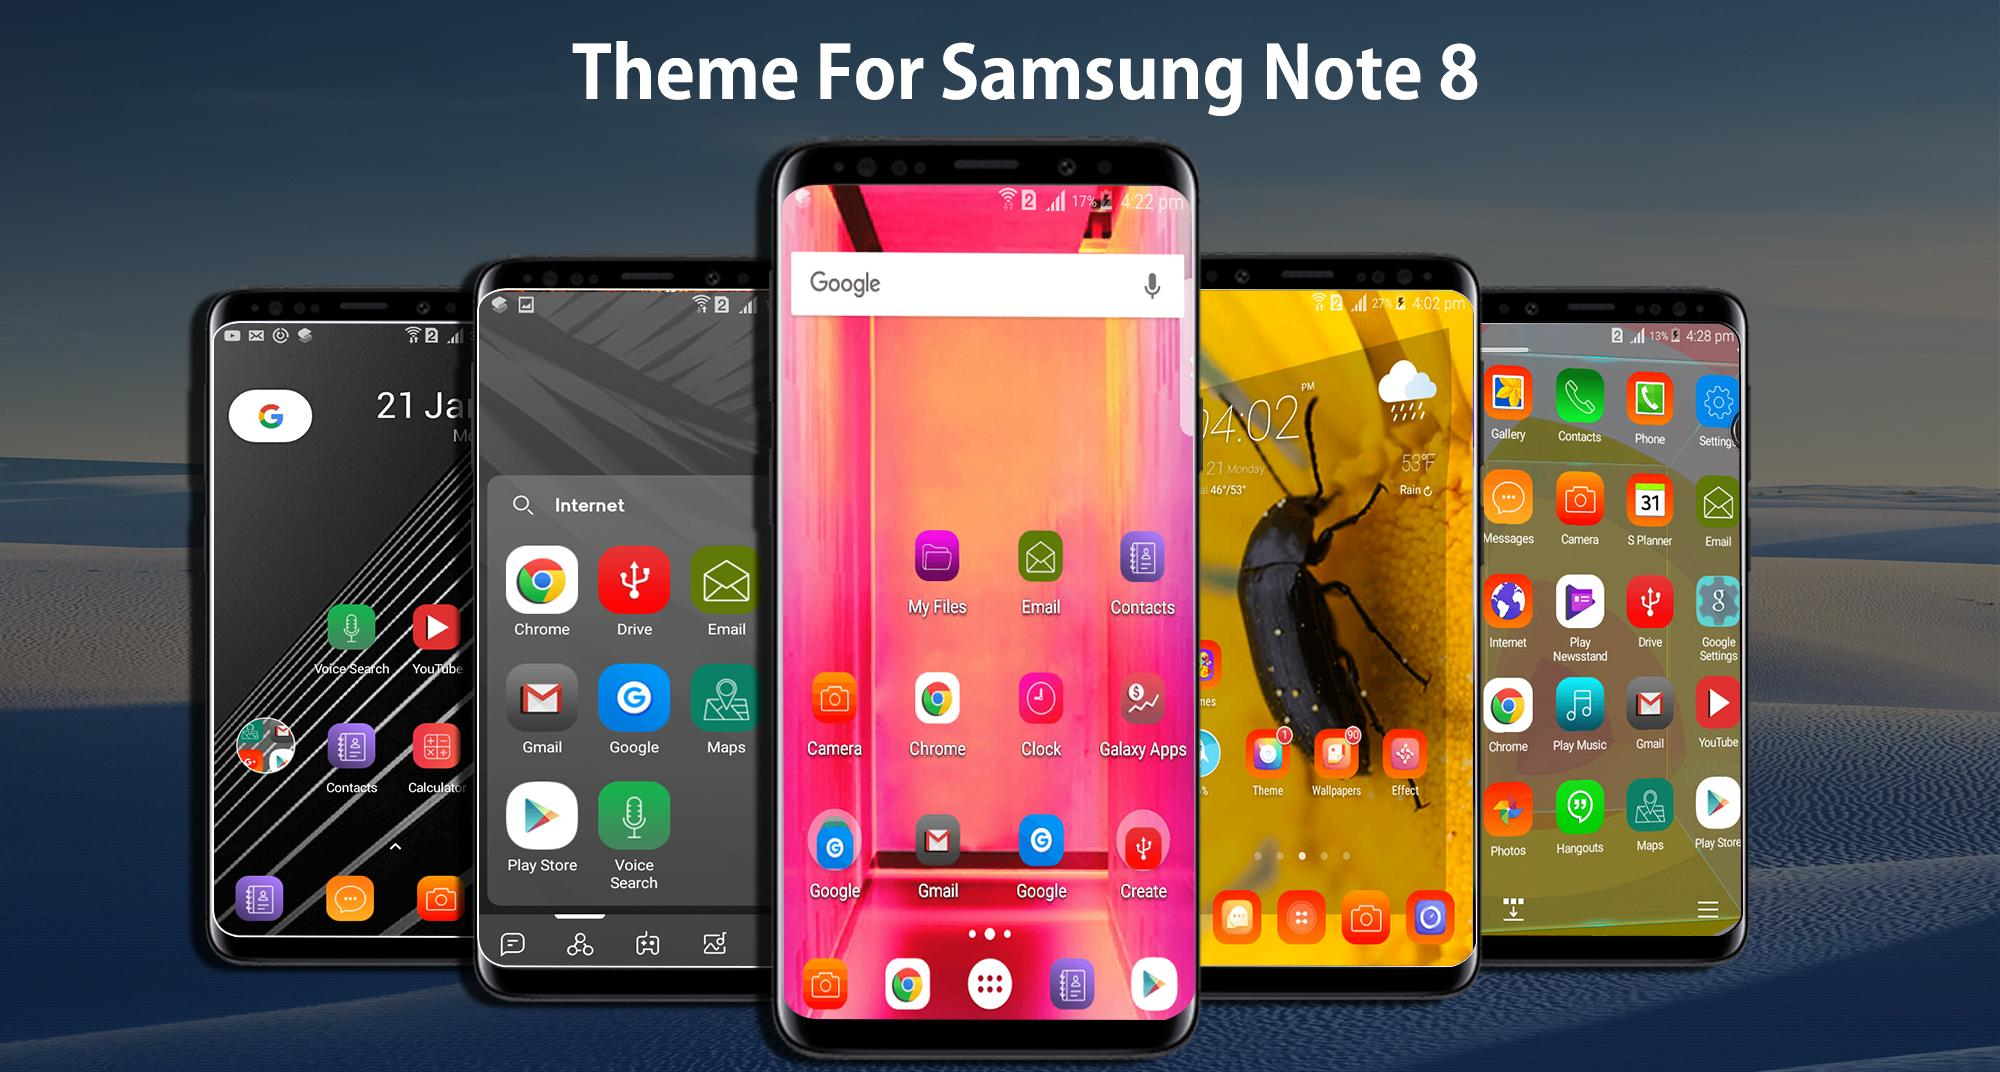 Theme For Samsung Galaxy Note 8 Launcher Wallpaper For Android Apk Download